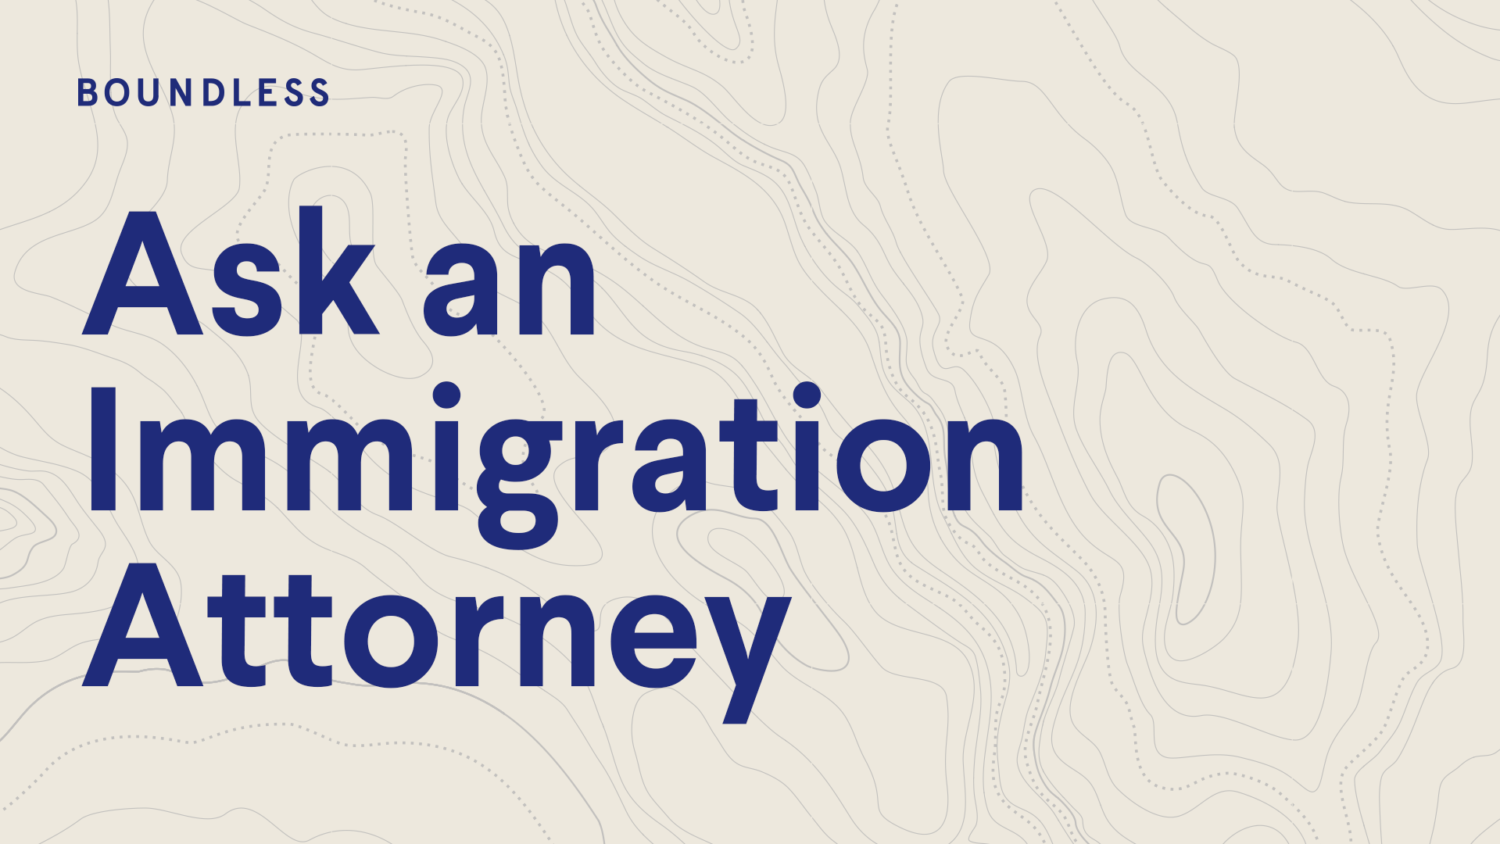 Ask an immigration attorney